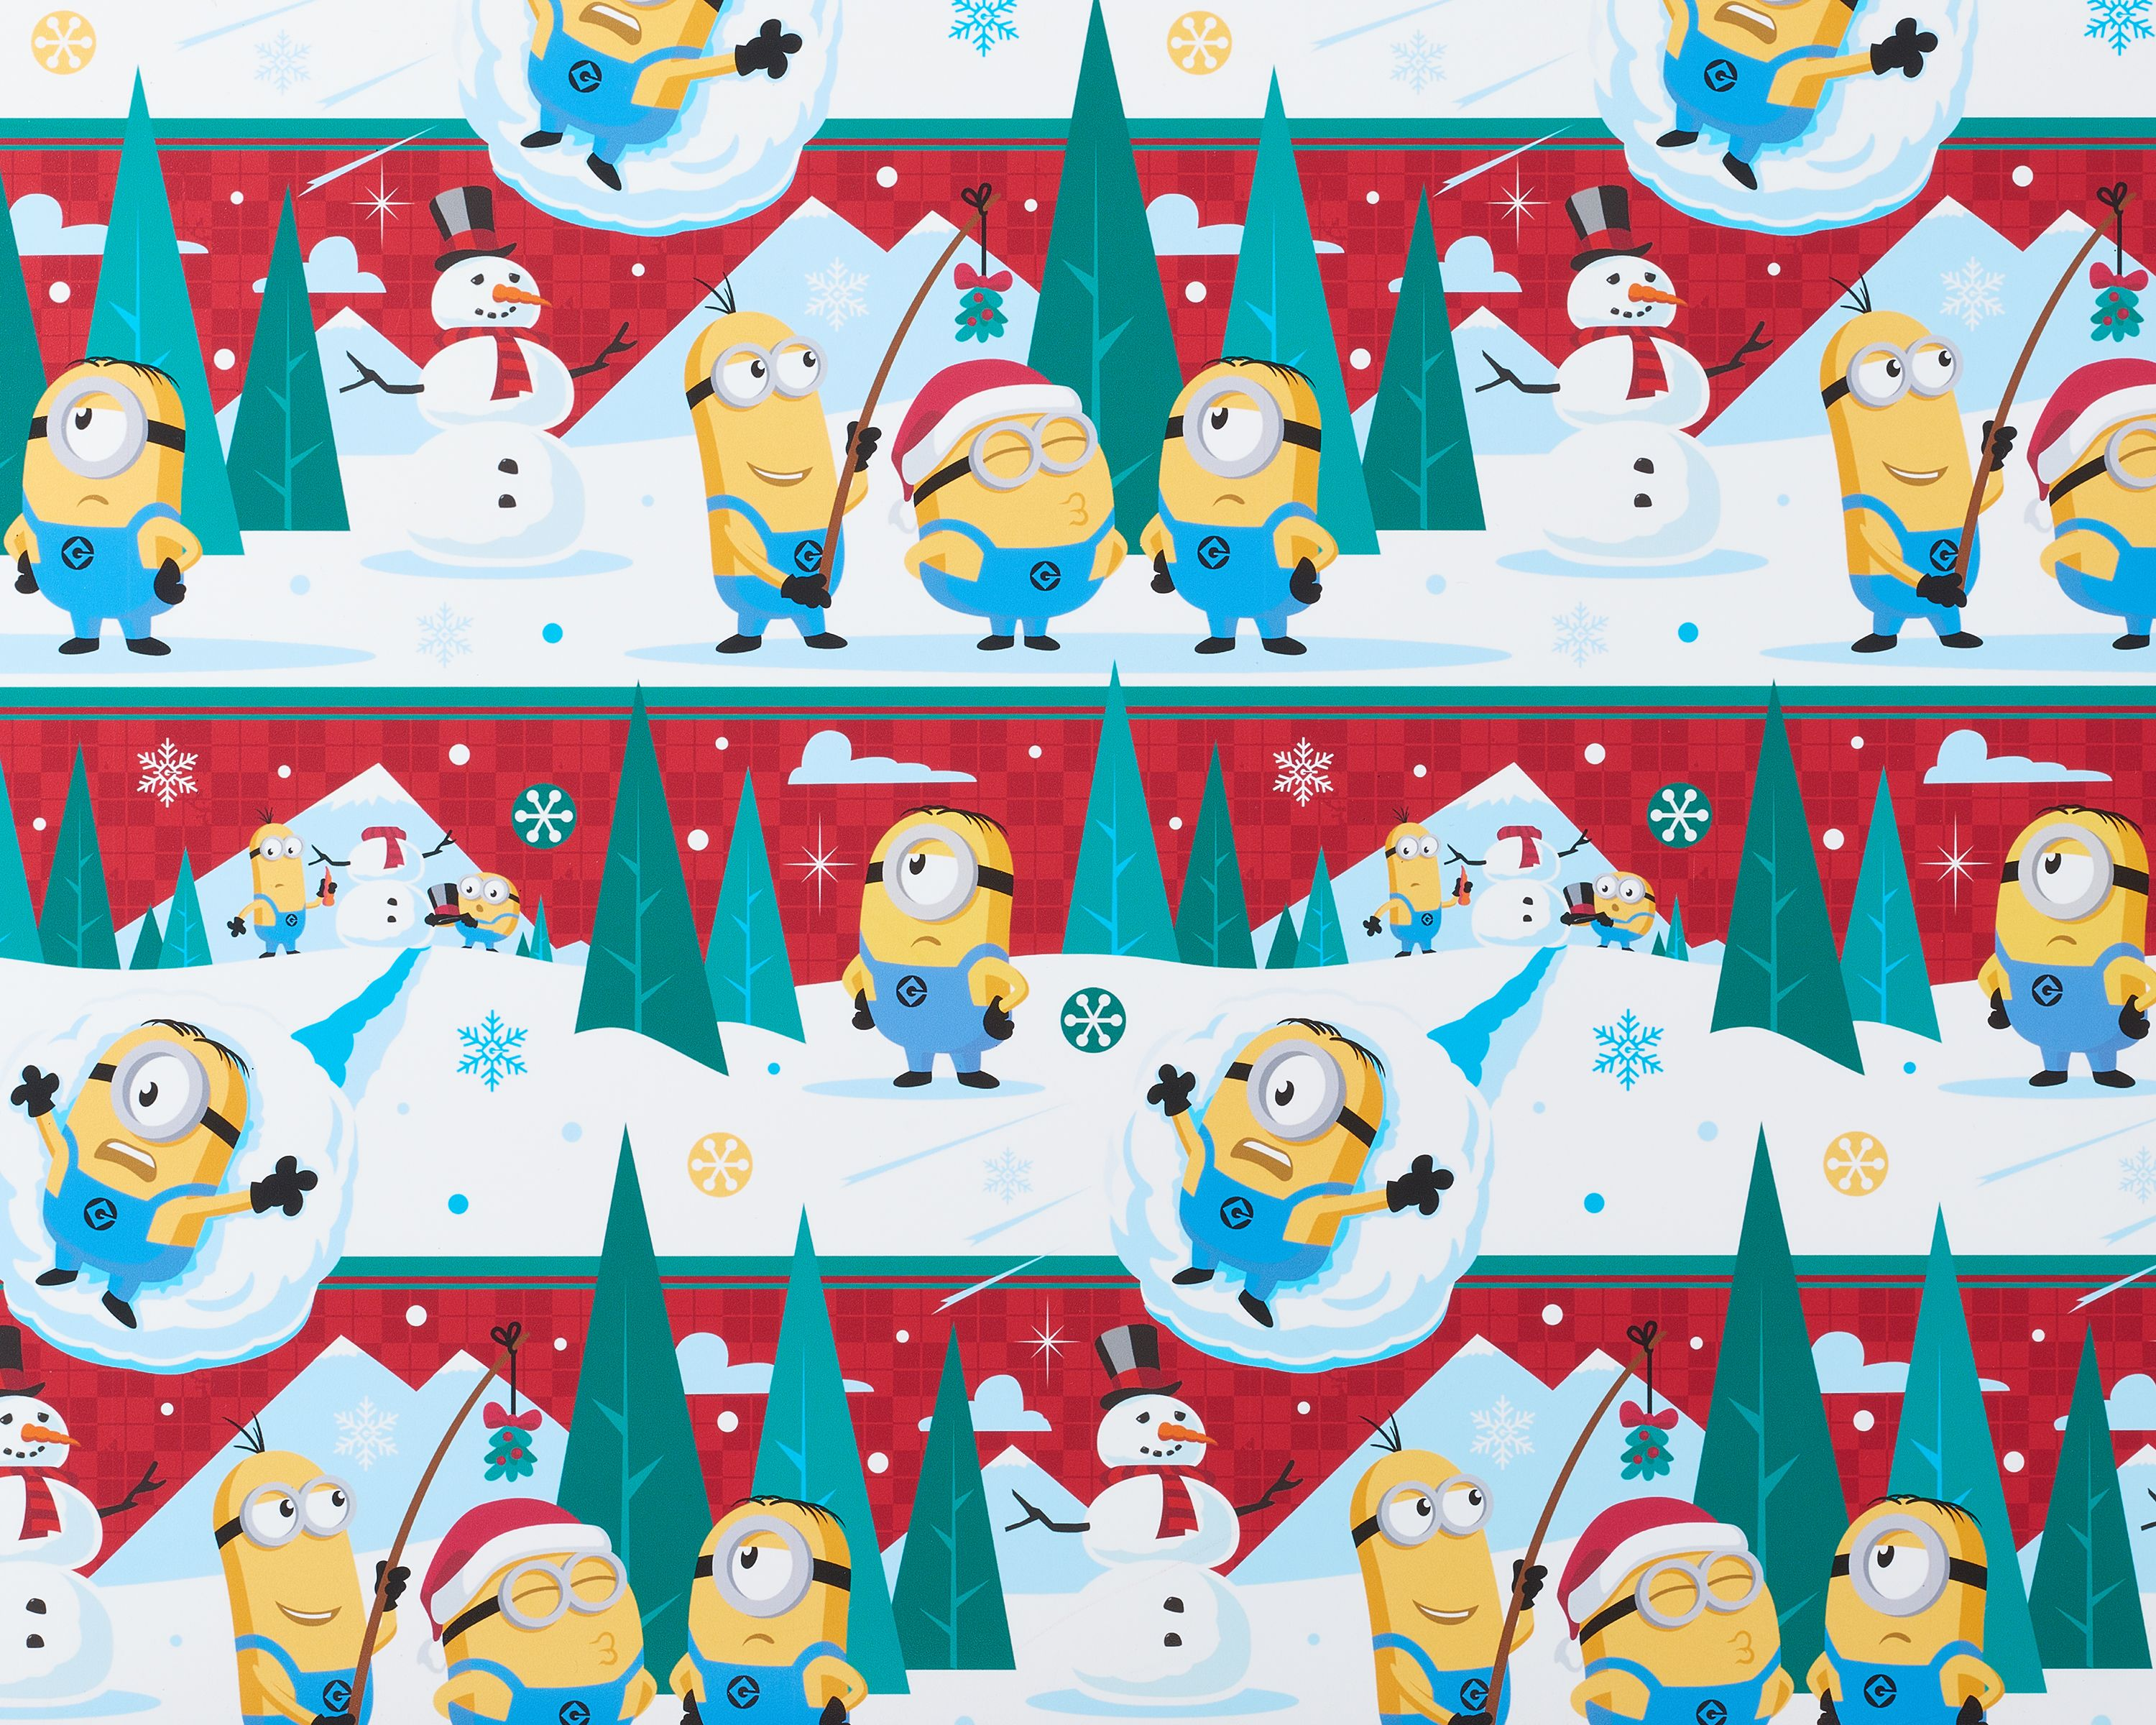 American Greetings Minions Christmas Wrapping Paper 40 sq. ft. total 2ct - Walmart.com  sc 1 st  Walmart & American Greetings Minions Christmas Wrapping Paper 40 sq. ft ...